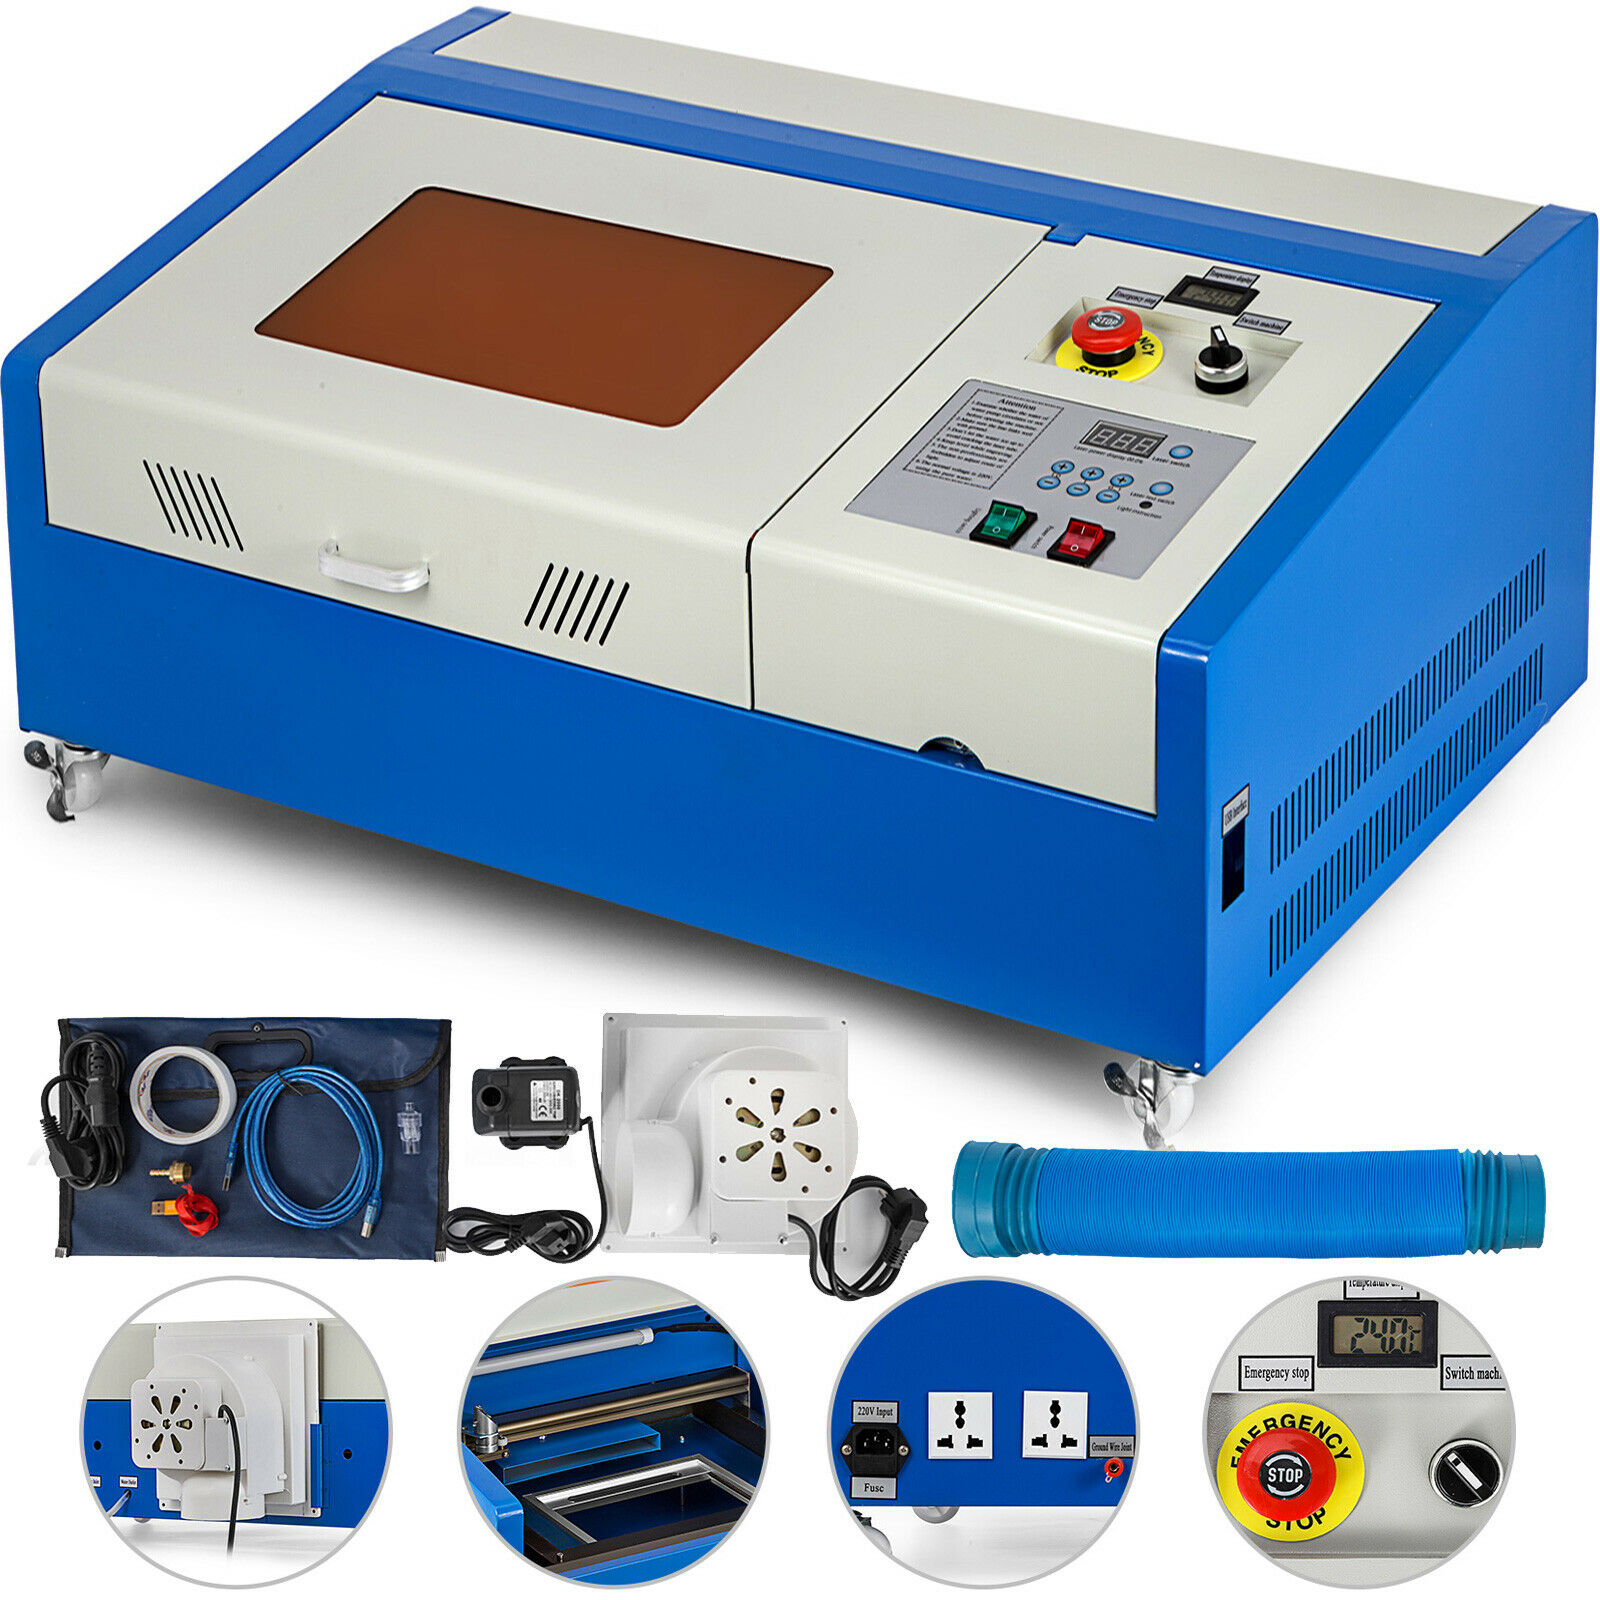 Updated HIGH PRECISE and HIGH SPEED Third Generation CO2 Laser Engraving Cutting Machine USB PORT